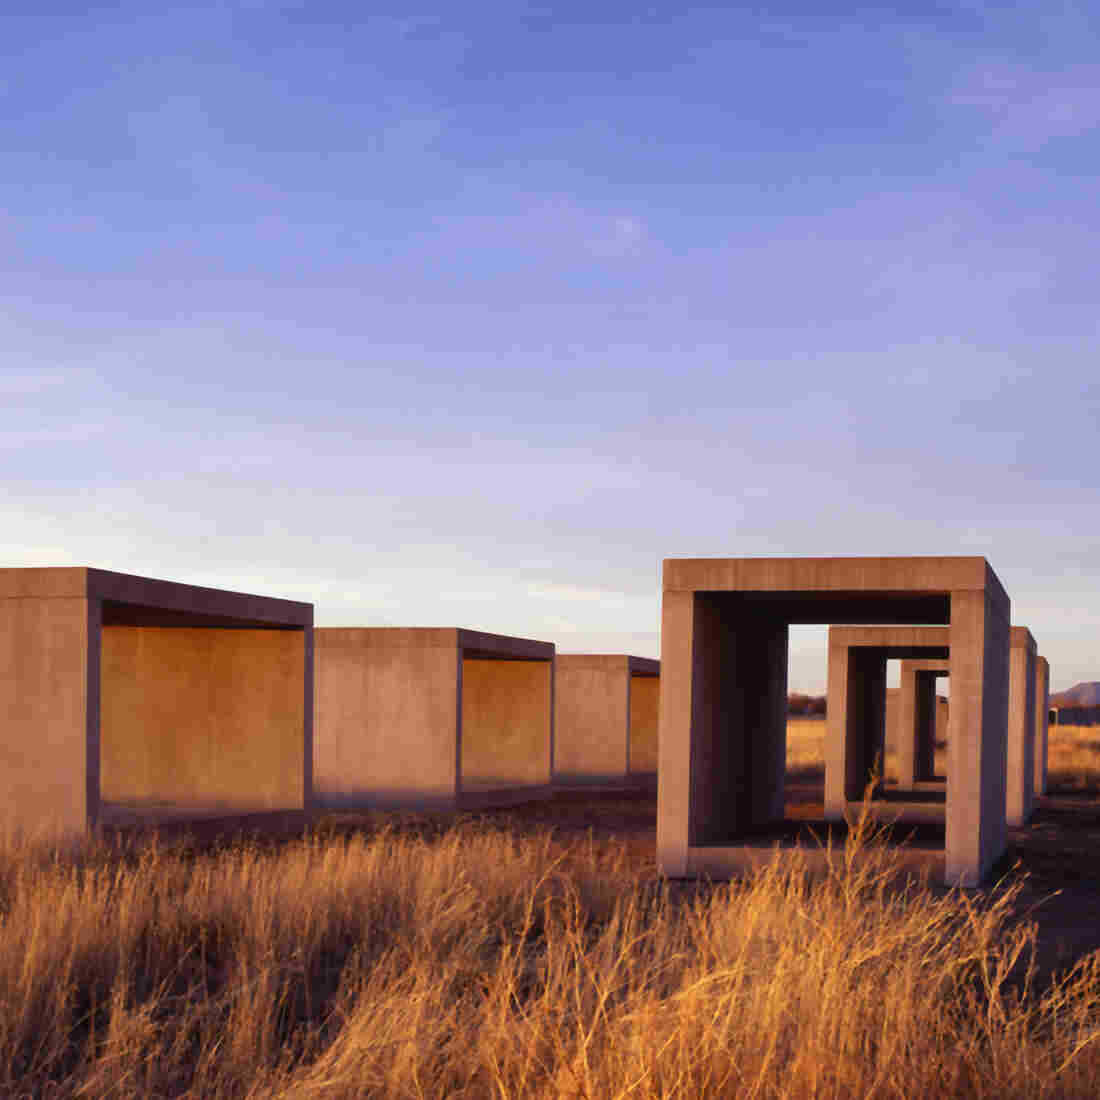 Marfa, Texas: An Unlikely Art Oasis In A Desert Town